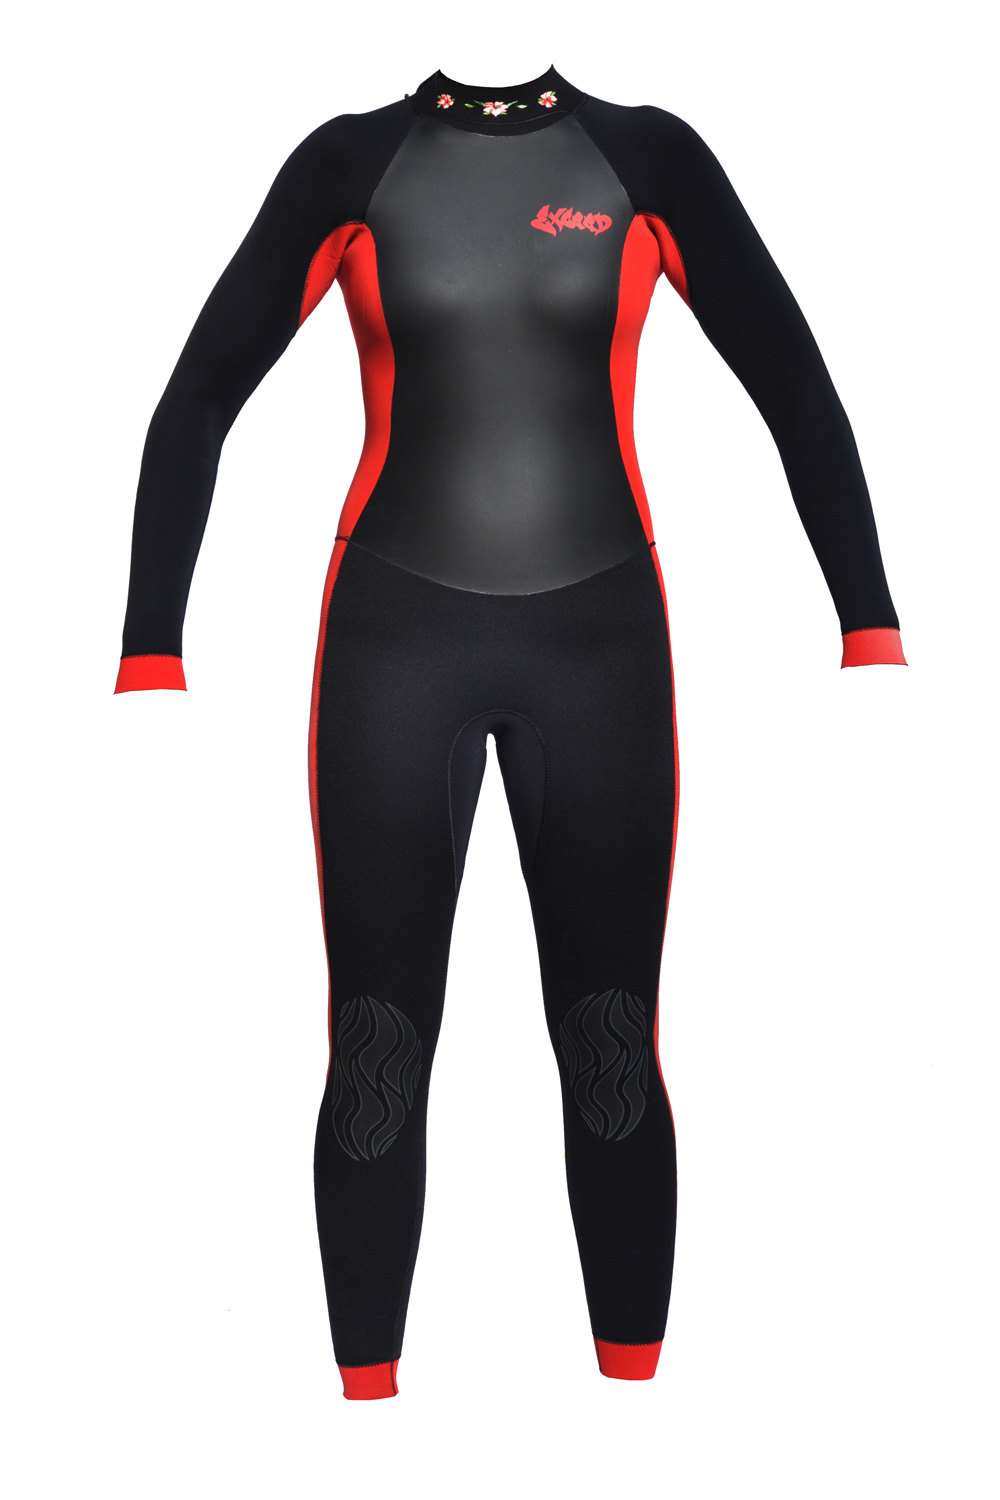 Exceed Essence 5/4mm Womens Long Wetsuit